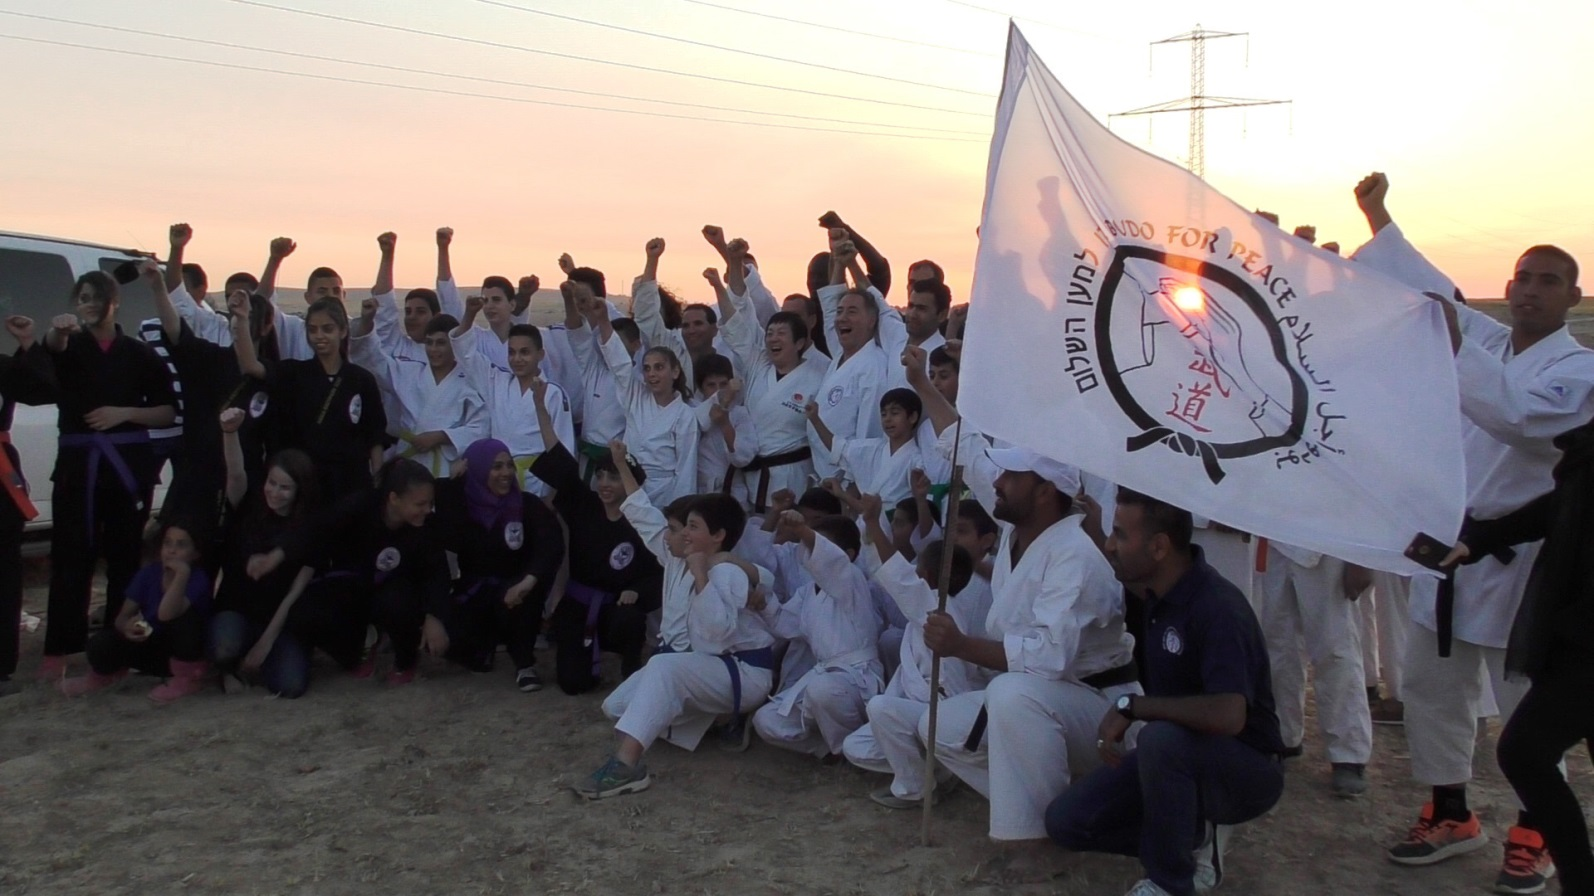 Training in the Negev Desert. Photo courtesy of Budo for Peace